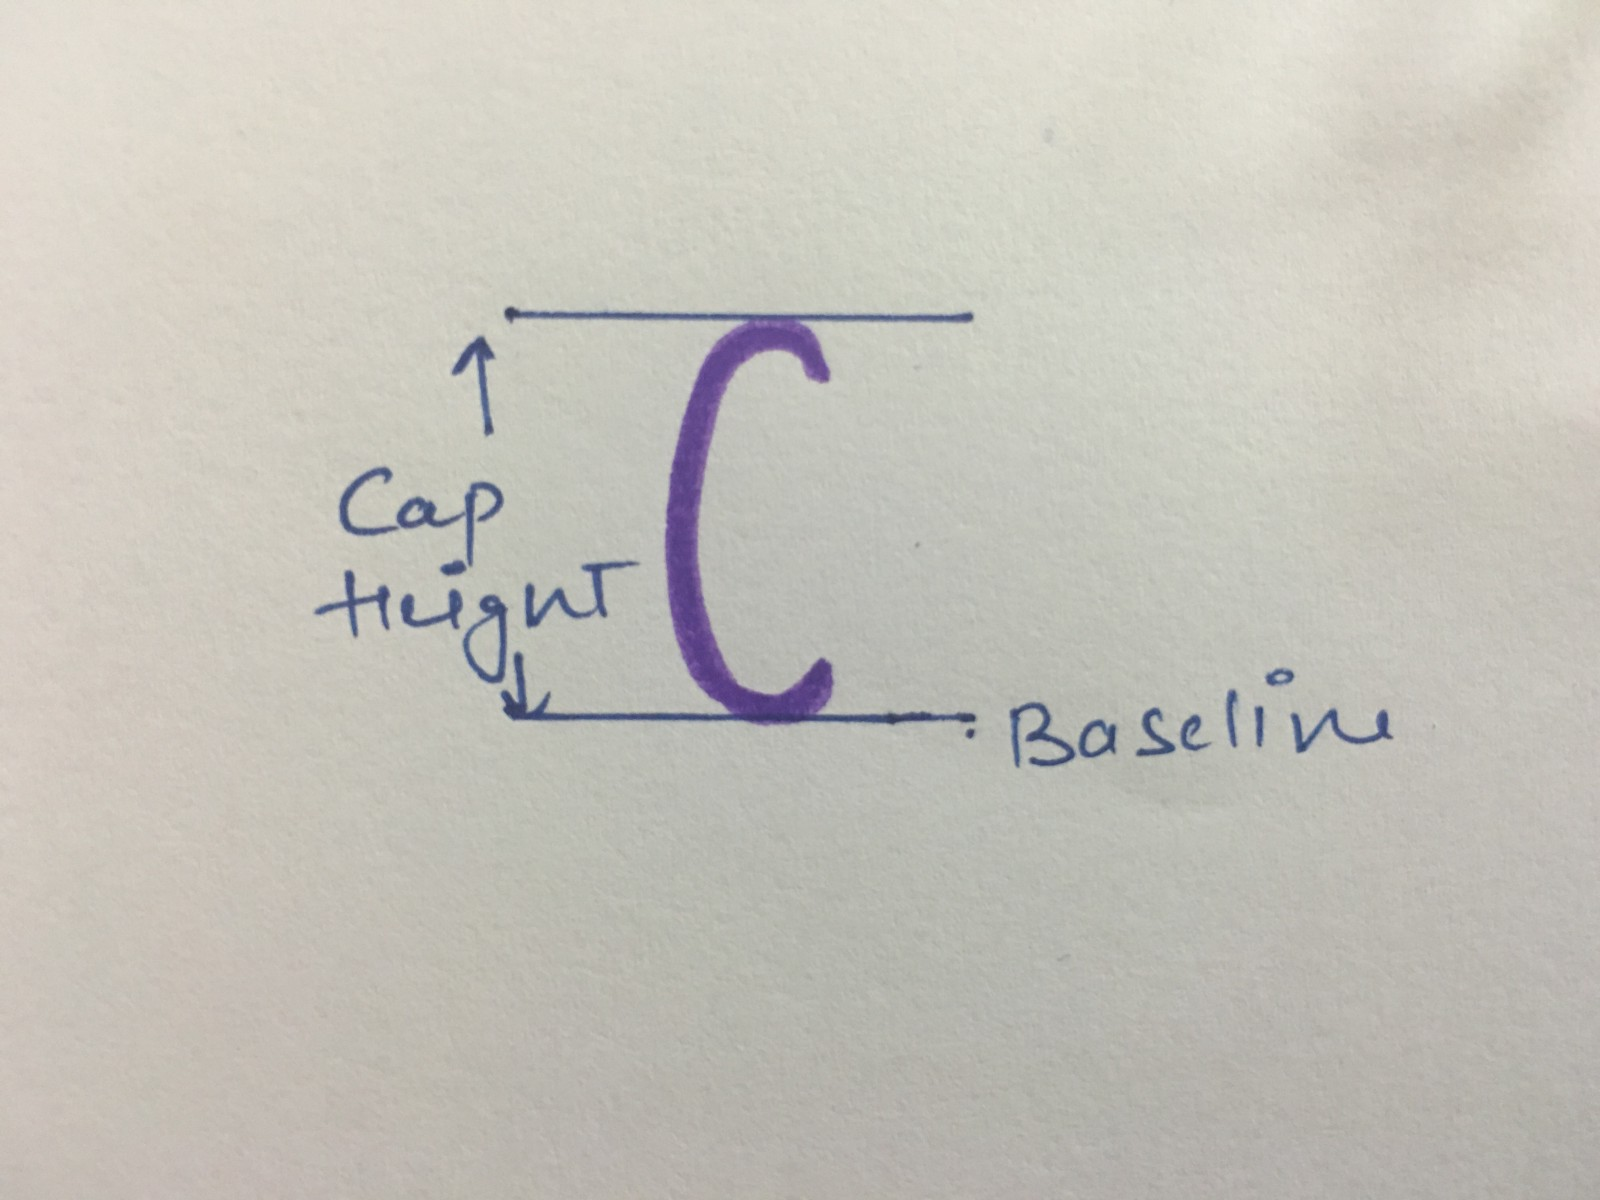 Anatomy of the Type – Prototypr